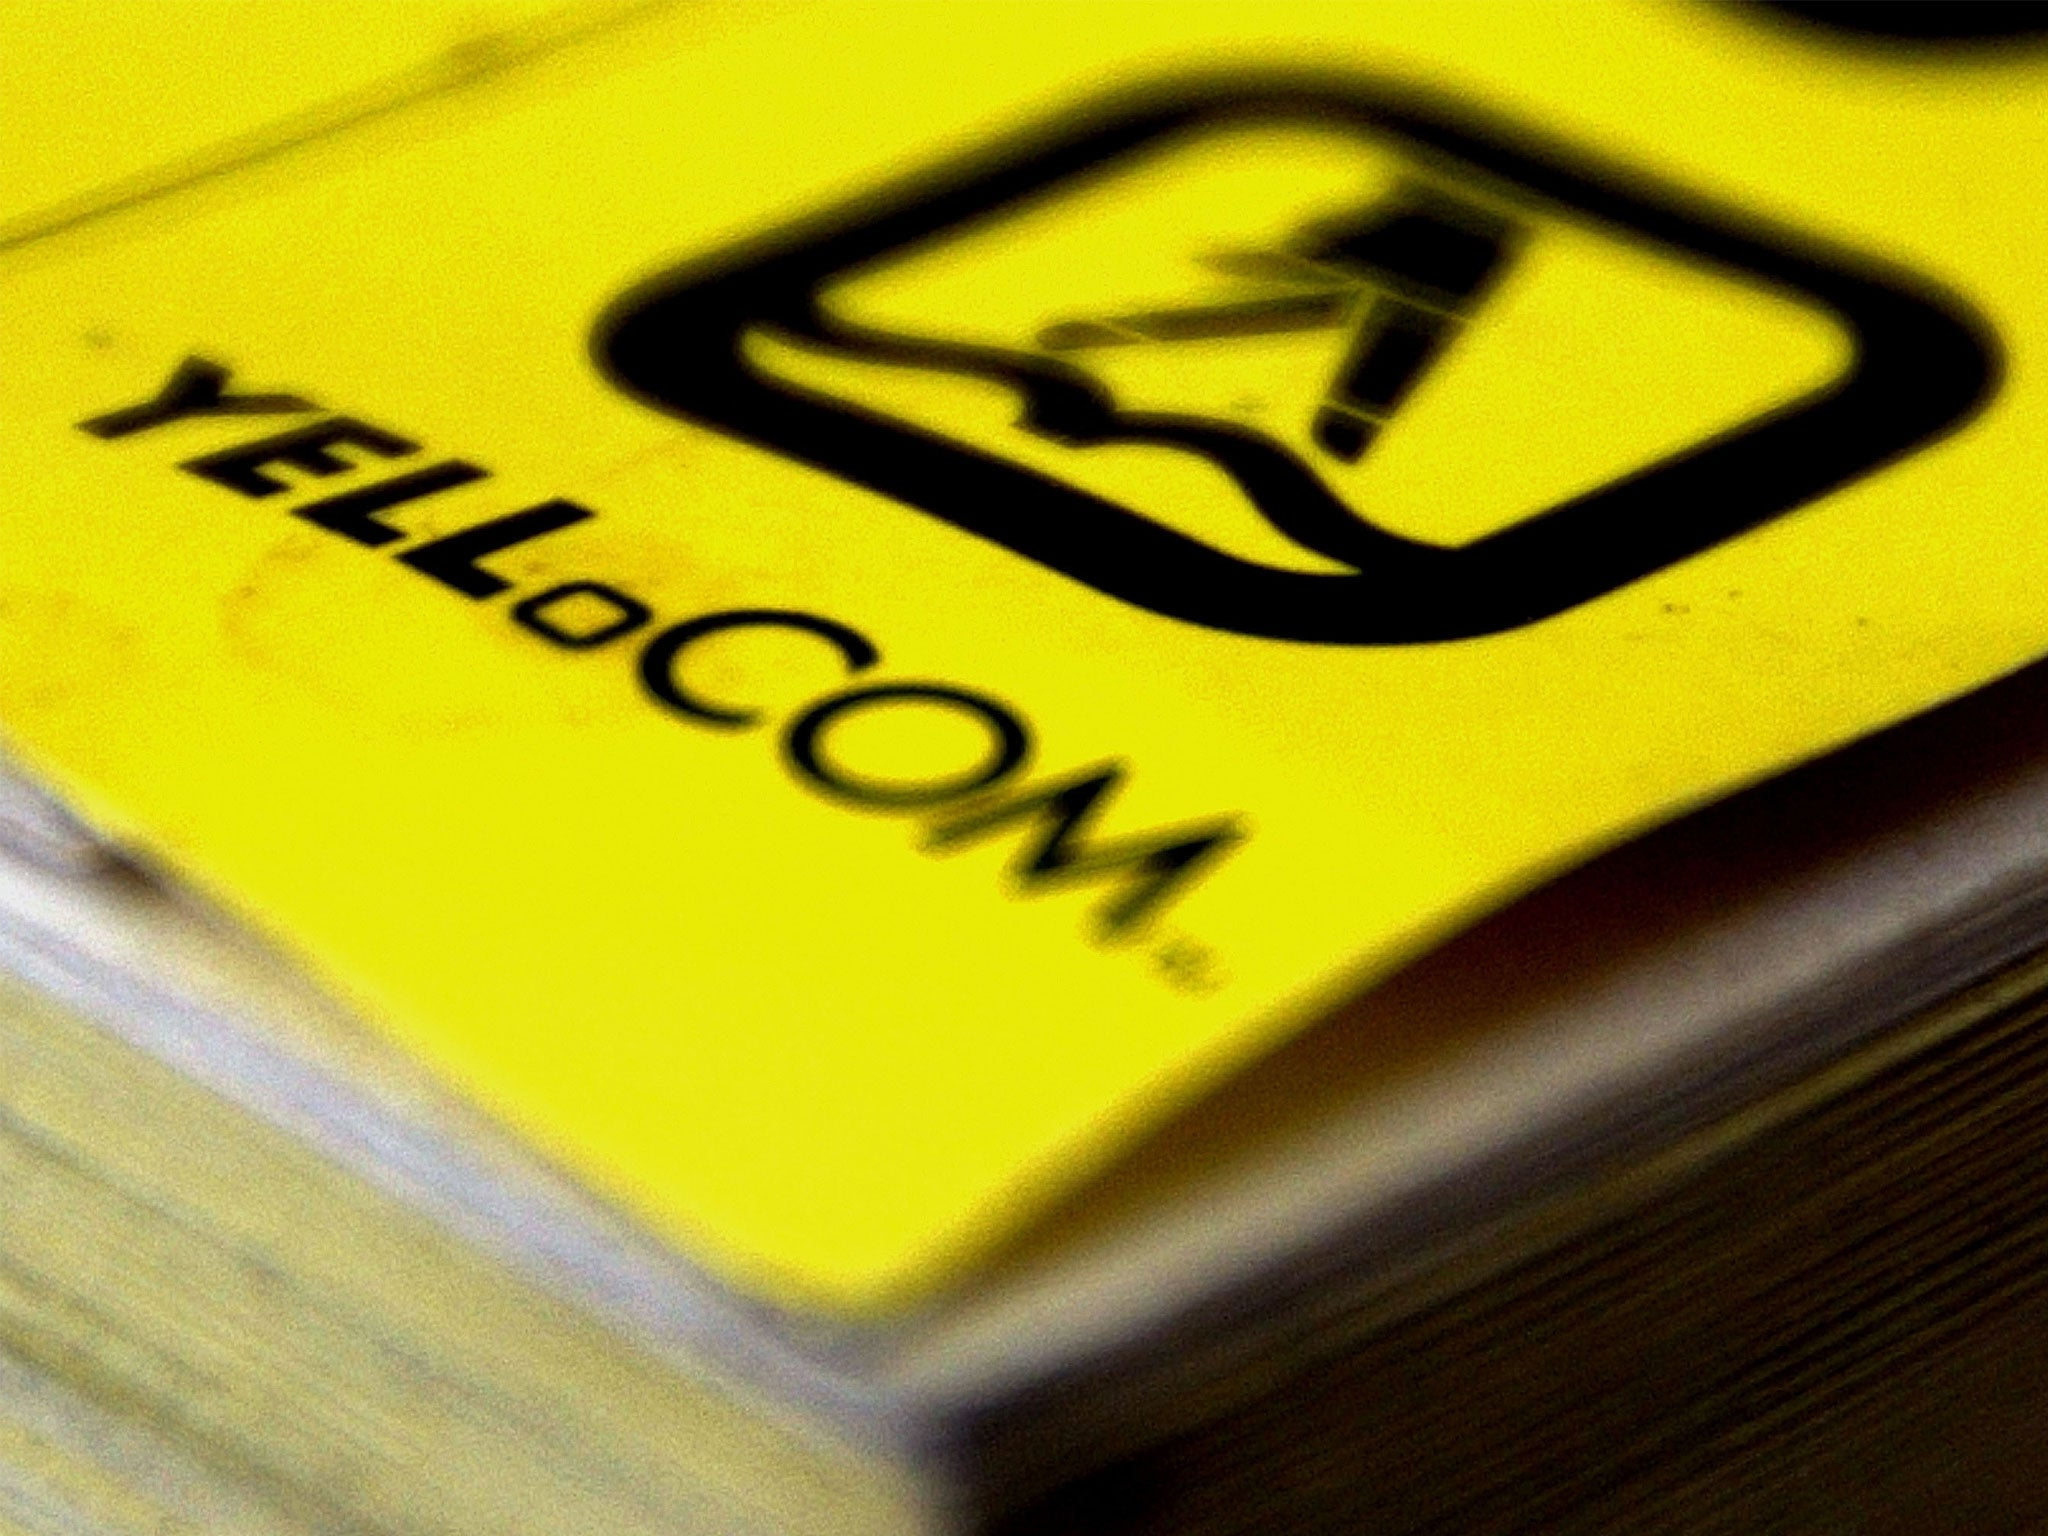 Yellow Pages Telephone Directory To Stop Being Printed